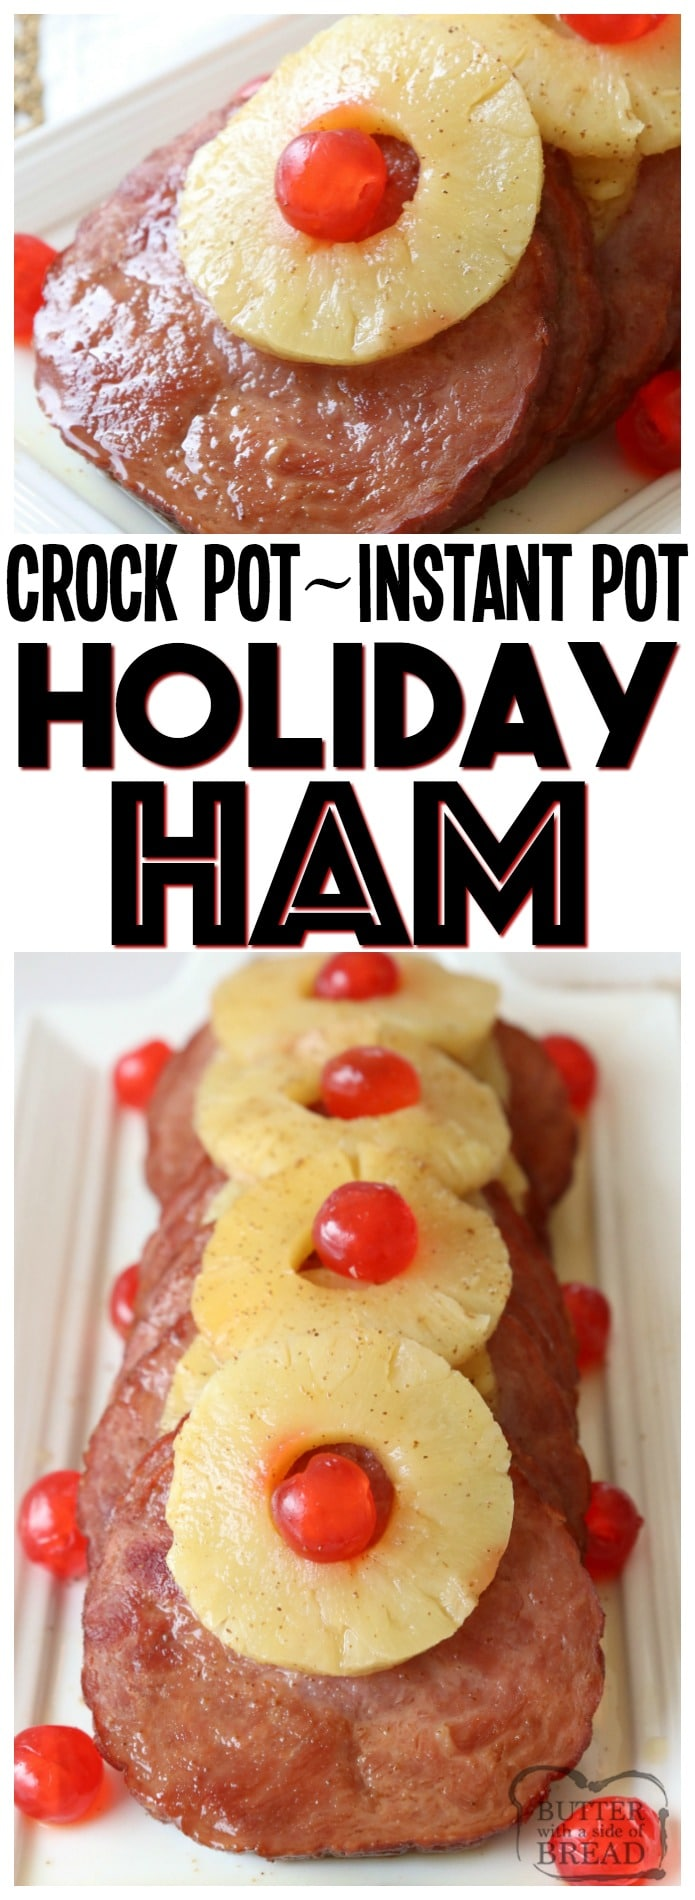 Crock Pot Ham is my favorite holiday ham recipe! Just 4 ingredients and can be made in the crockpot or Instant Pot. Brown sugar and pineapple provide a sweet, tangy flavor to the ham. Quick & easy slow cooker ham recipe that takes just minutes to prepare and yields tender, flavorful and juicy ham.